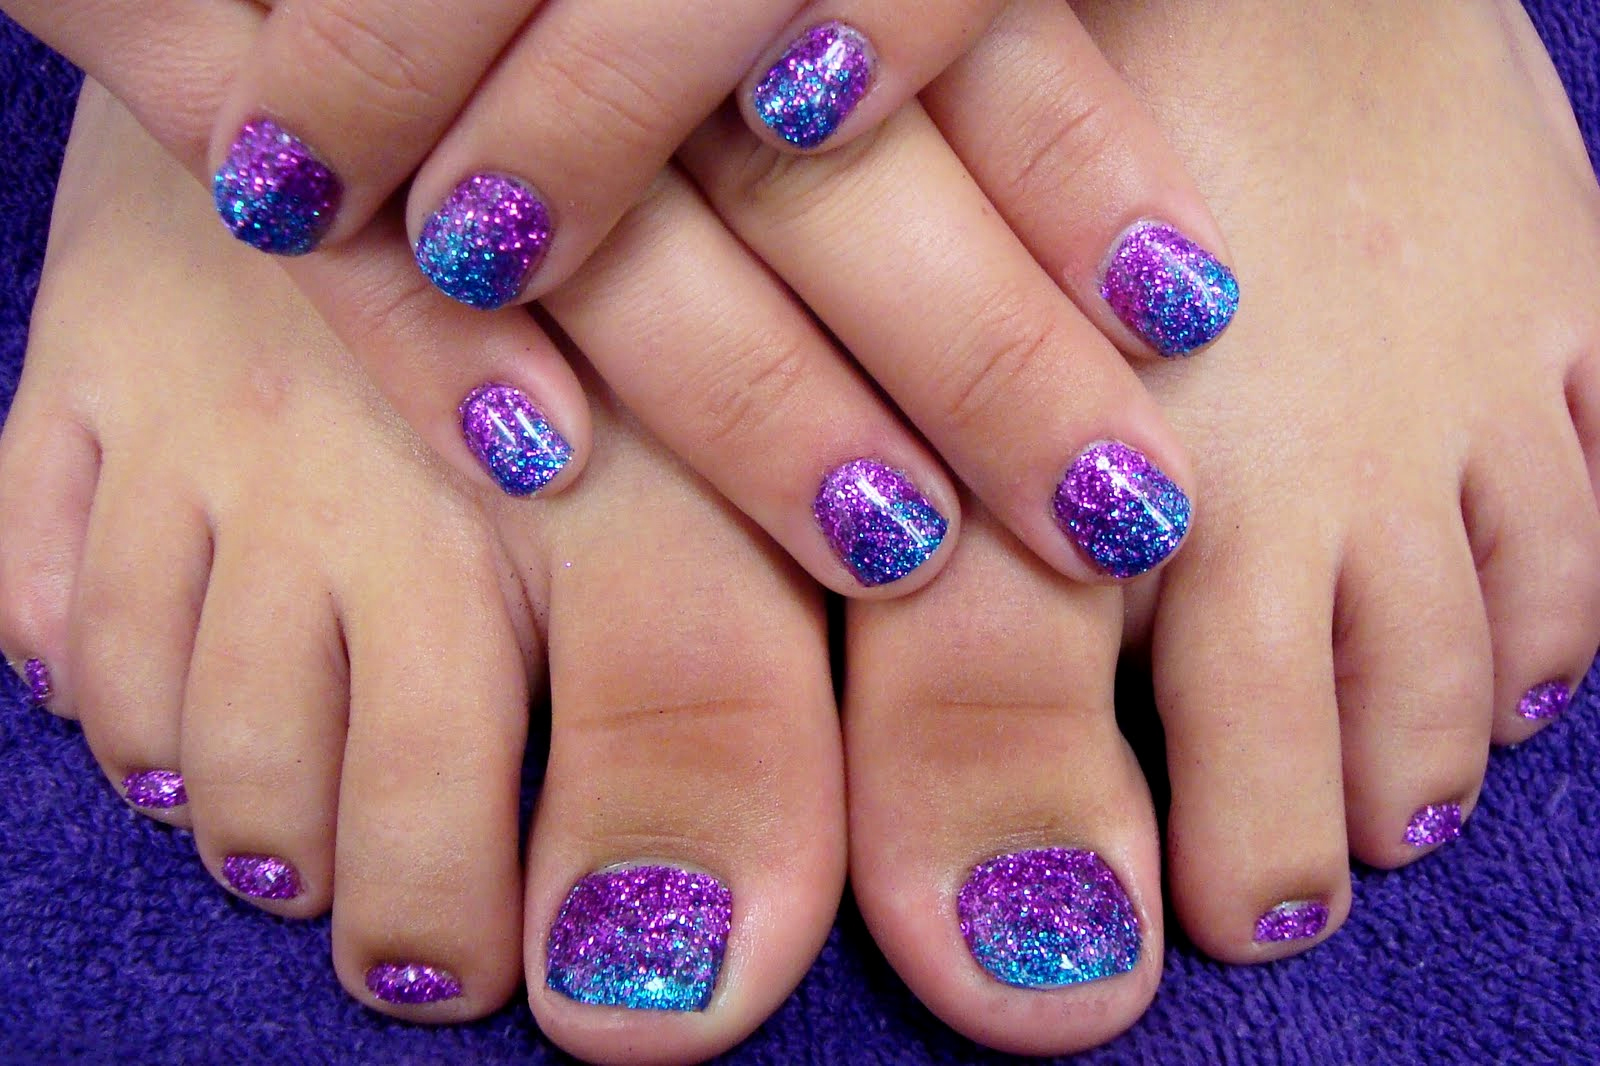 Toe Nail Art Designs New Full Sets Glitter toes Magic Manicure with Glitter Party